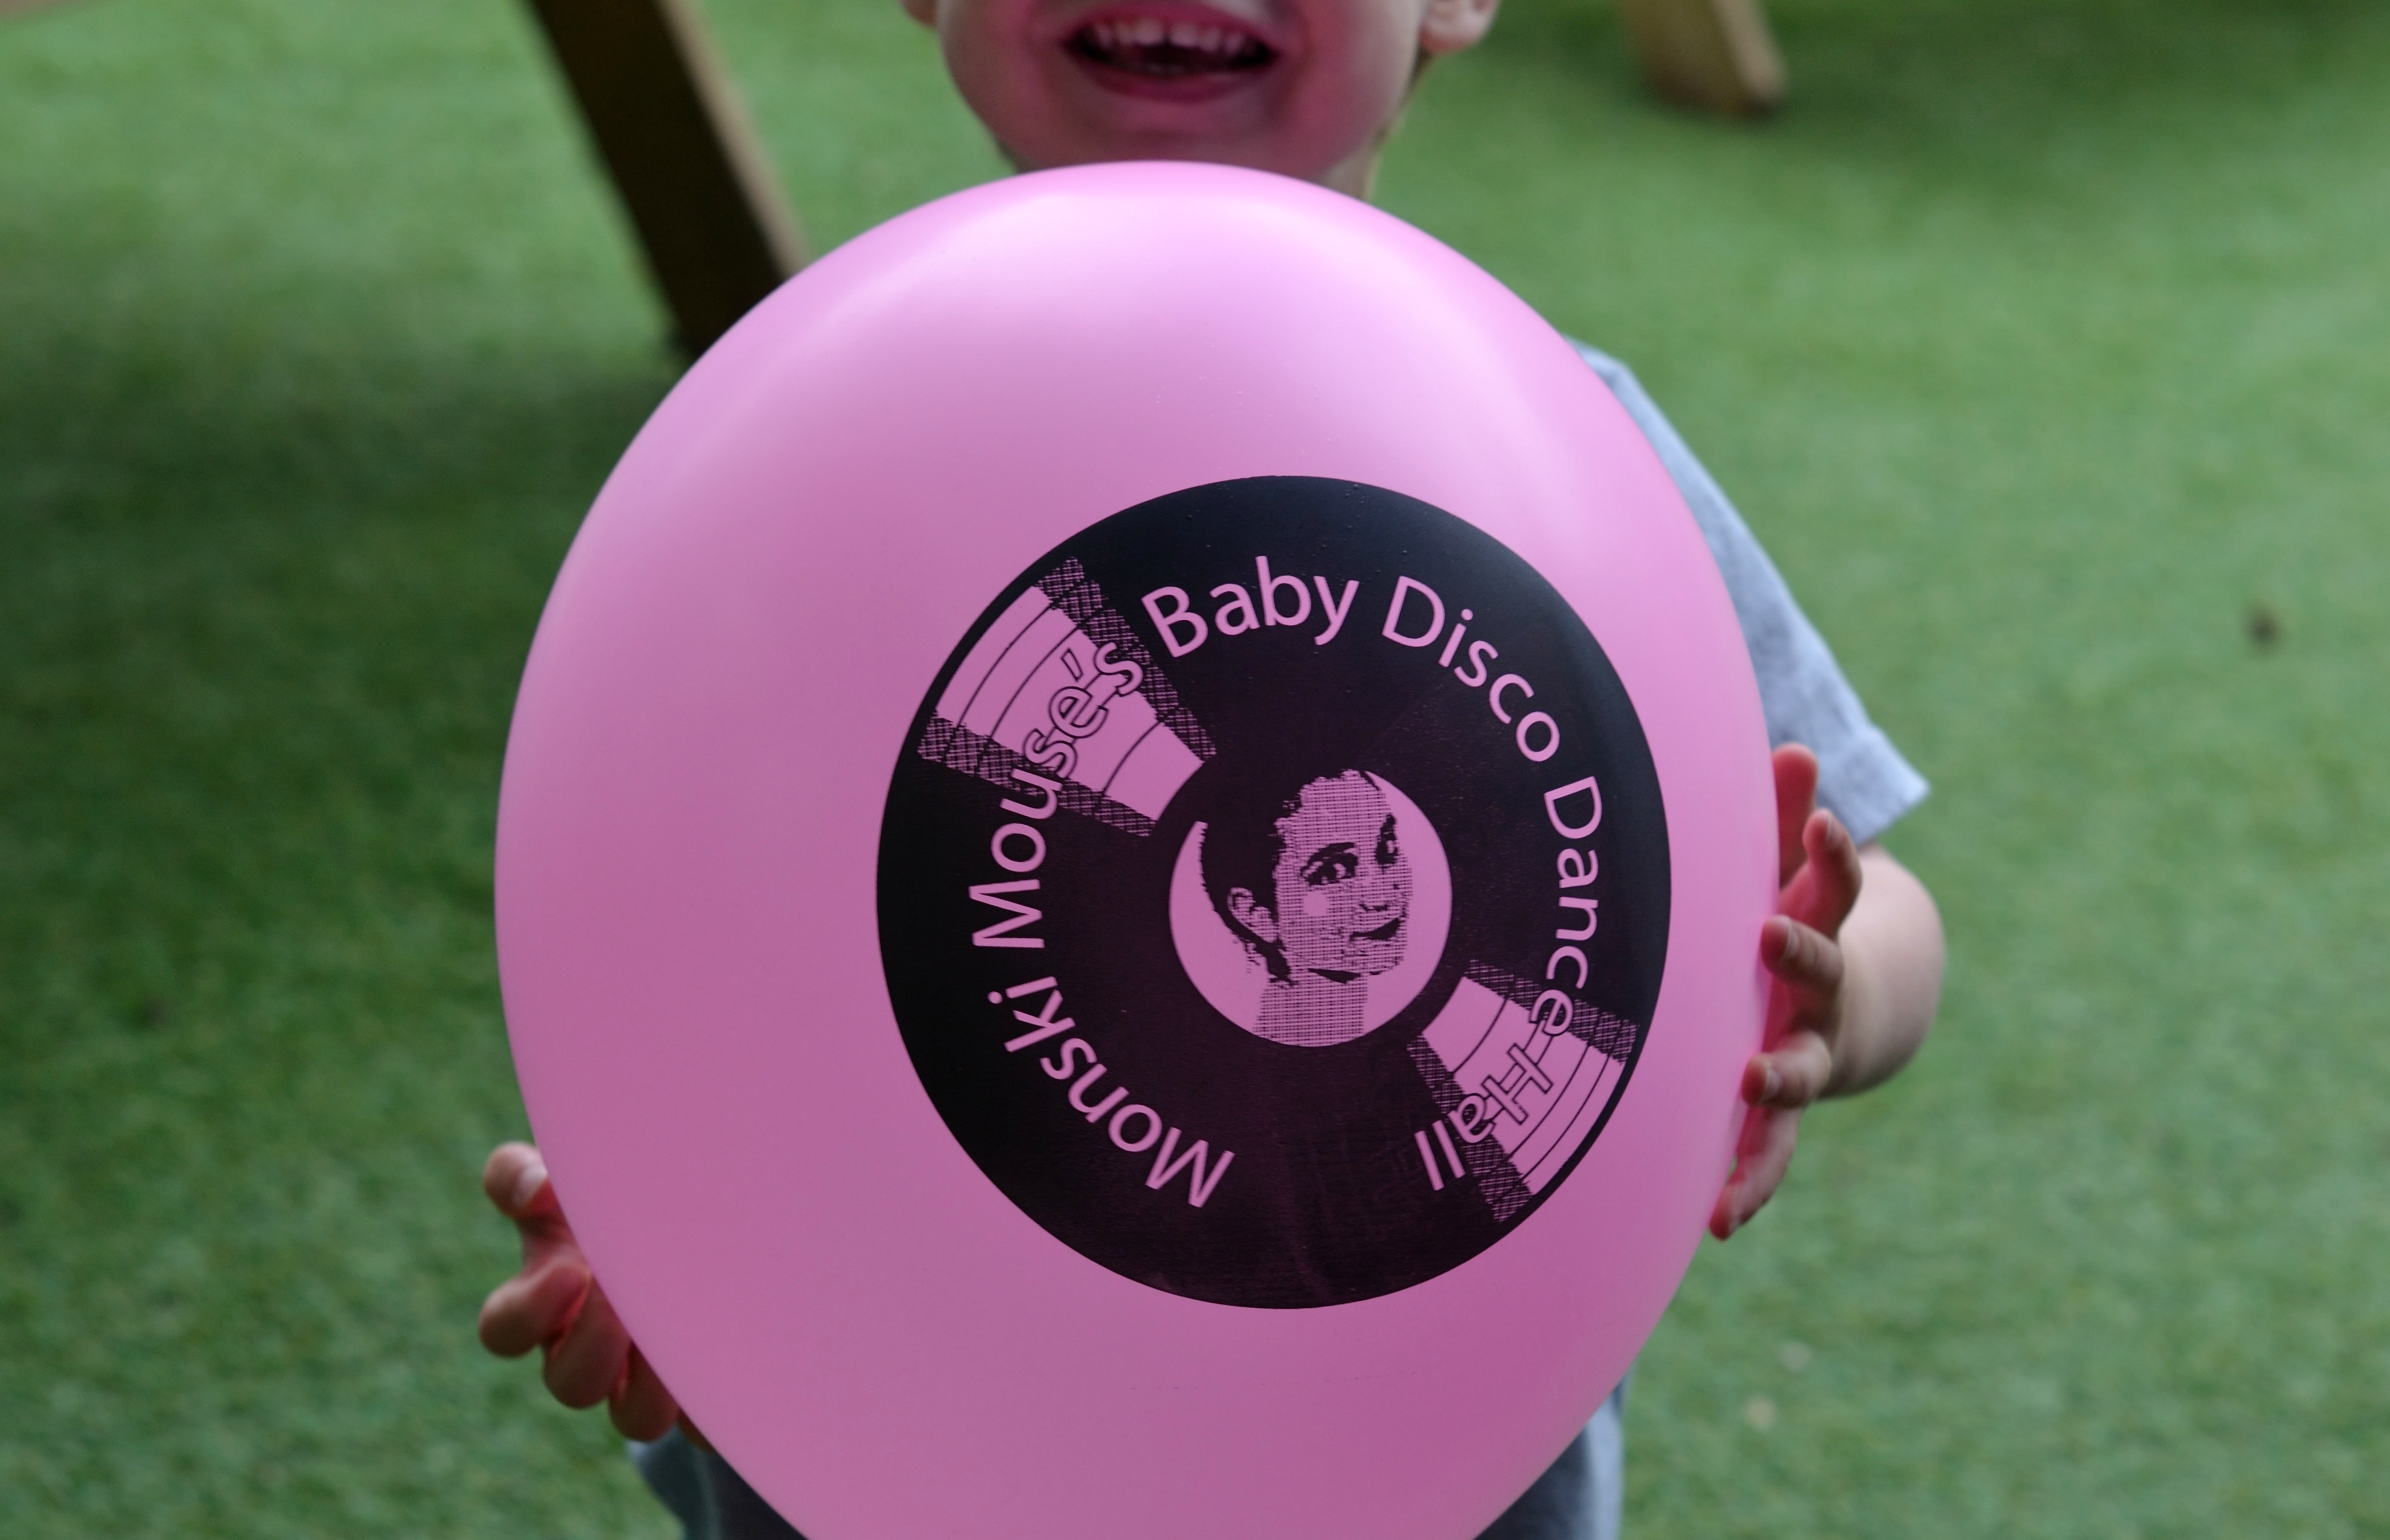 John's pink balloon at Monski Mouse Baby Disco Dance Hall.